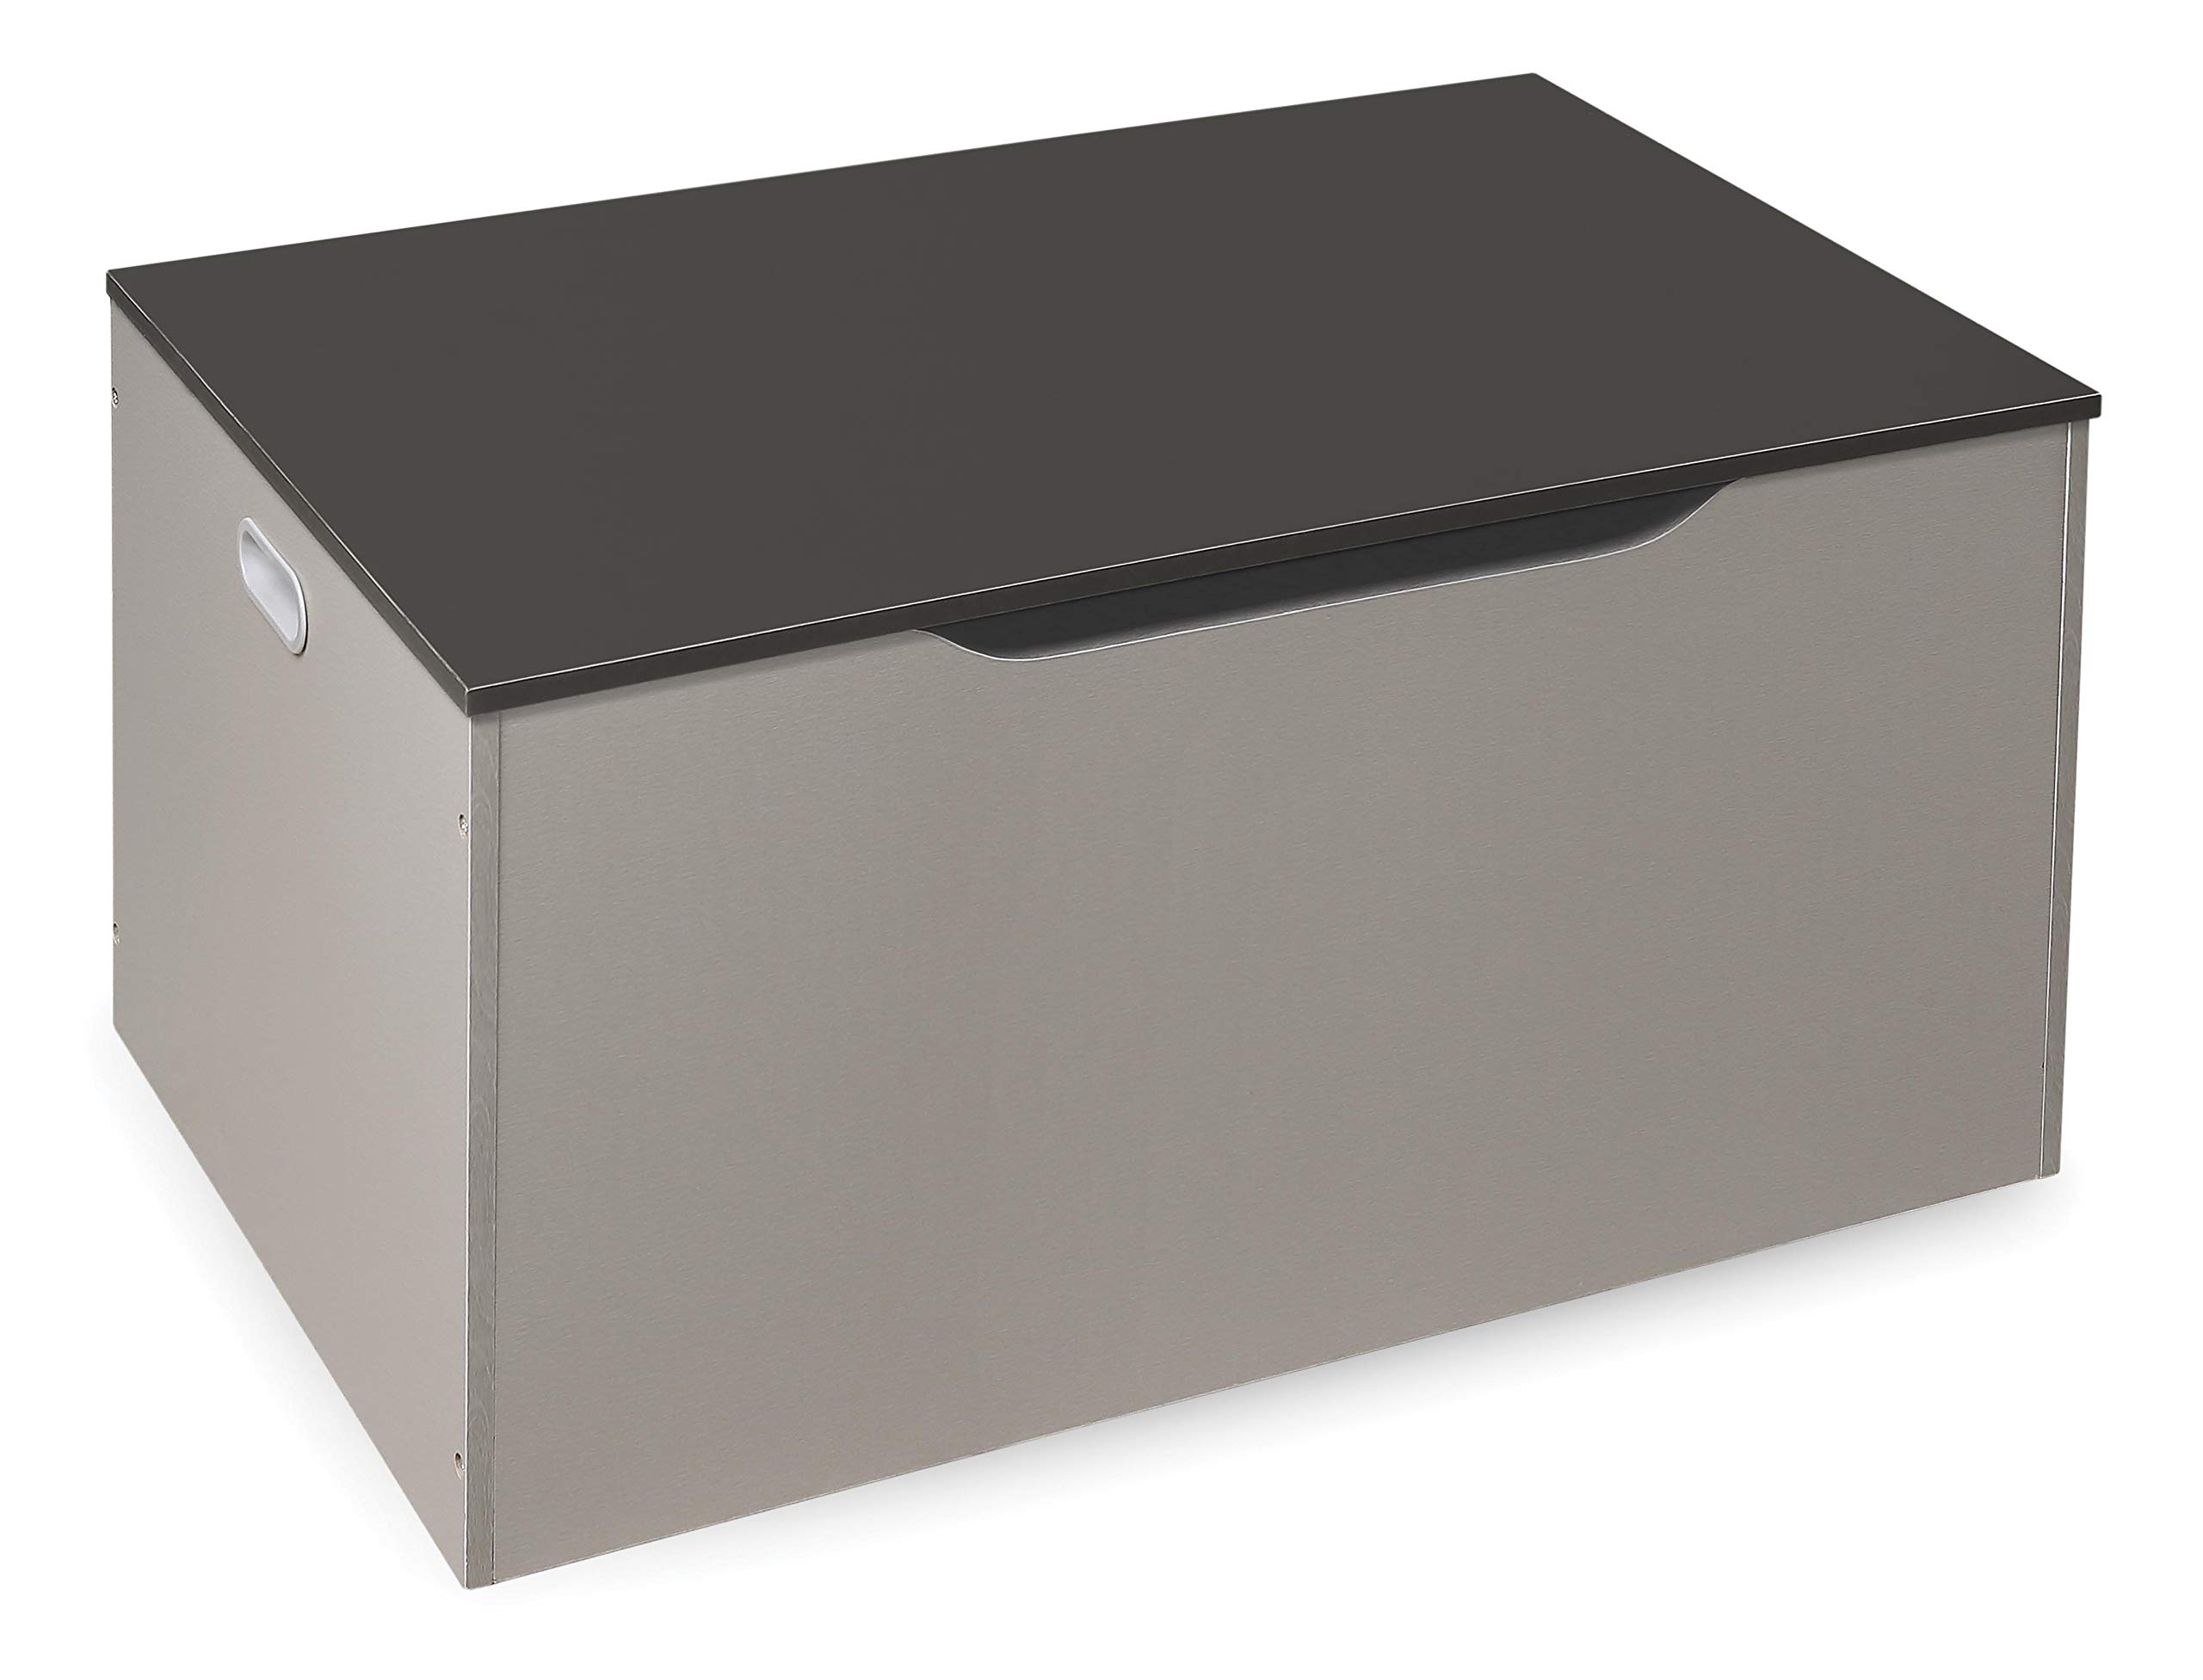 Badger Basket Bench Seat Toy and Storage Box with Lift Top and 2 Safety Hinges, Light Gray/Dark Gray